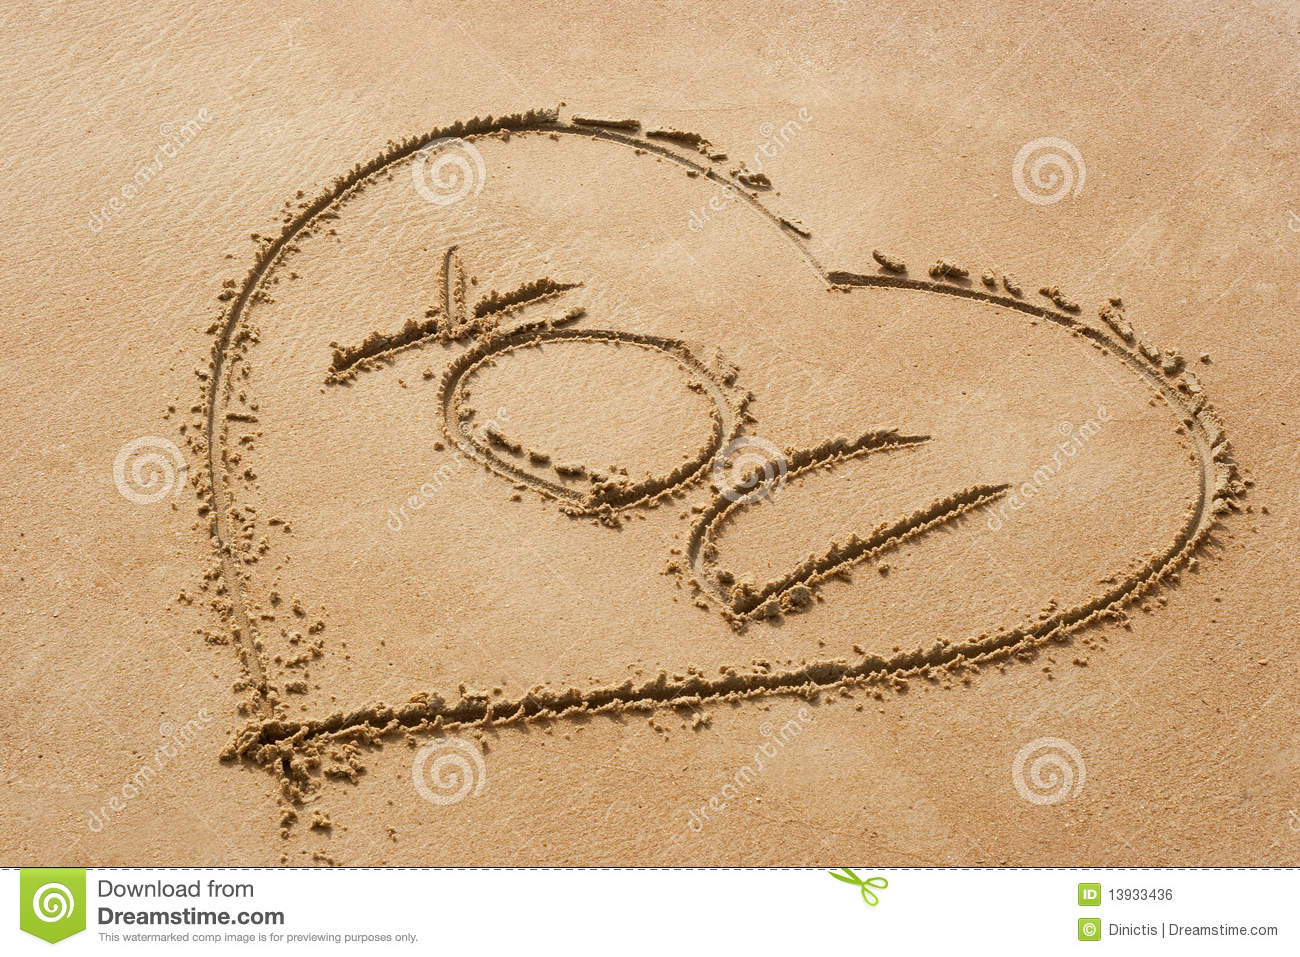 Awesome Heart Shape Symbol With The Word You On Sandy Beac Stock Photo   Image Of  Grunge, Anniversary: 13933436